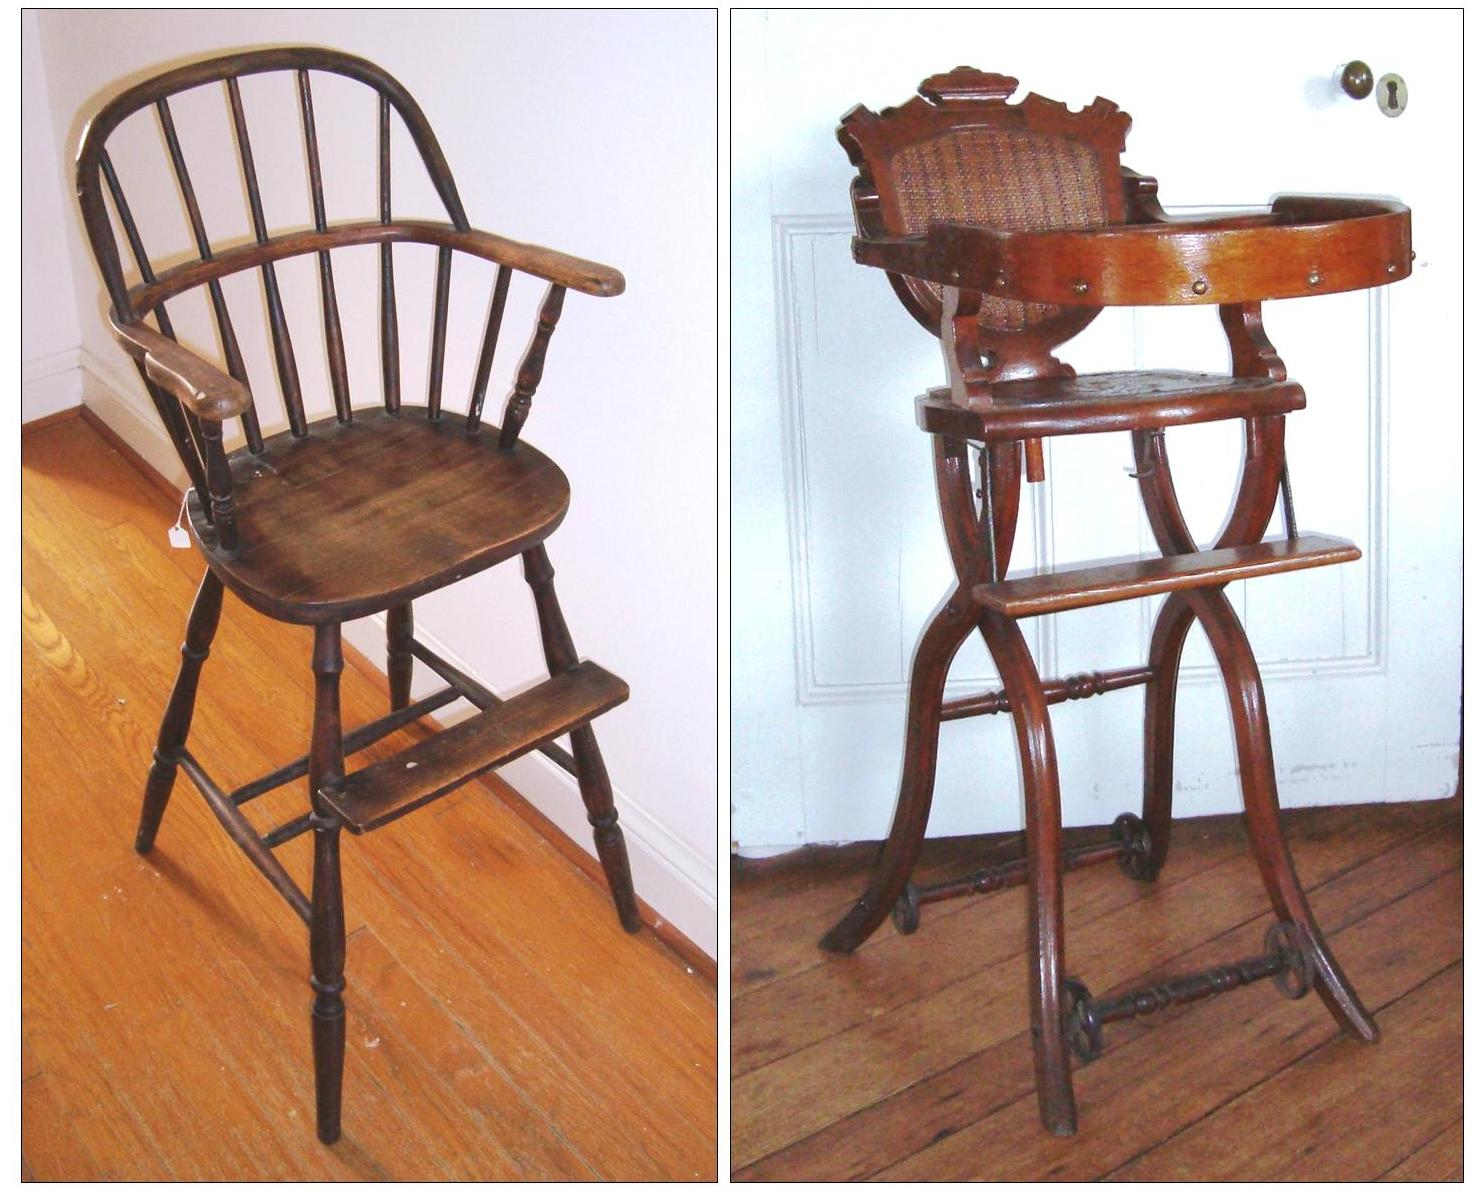 wooden high chairs for babies fold up chair beds infant late 19th century a fine collection